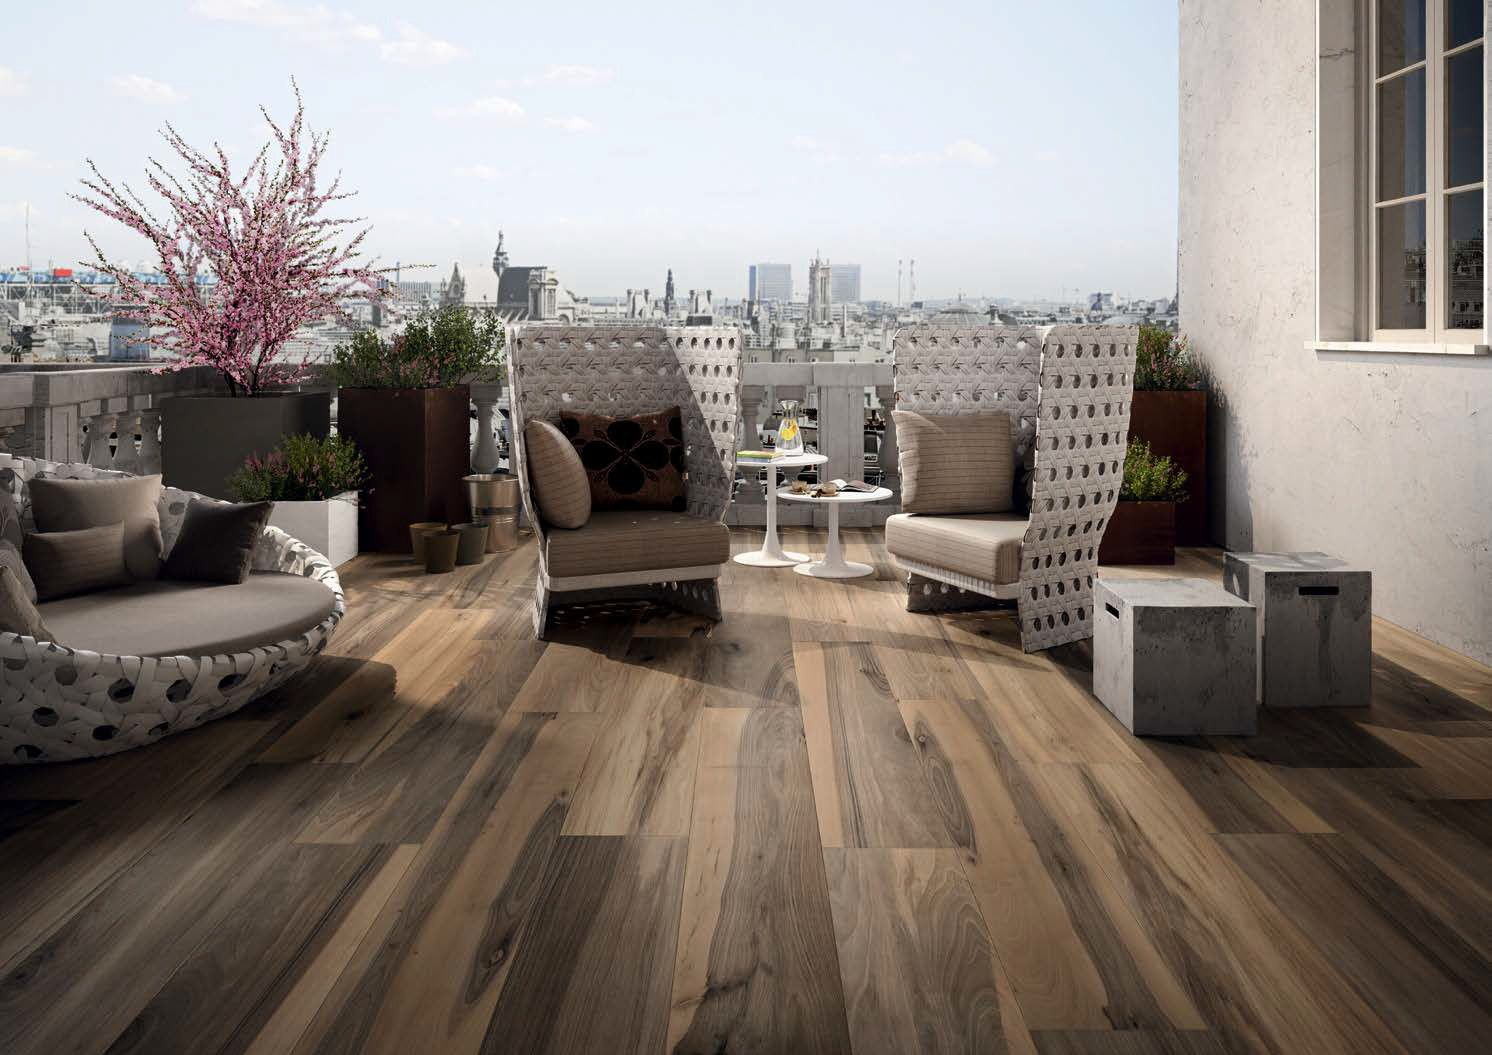 Belmont By Fine In Noce Is Available In 8x48 Porcelain Planks